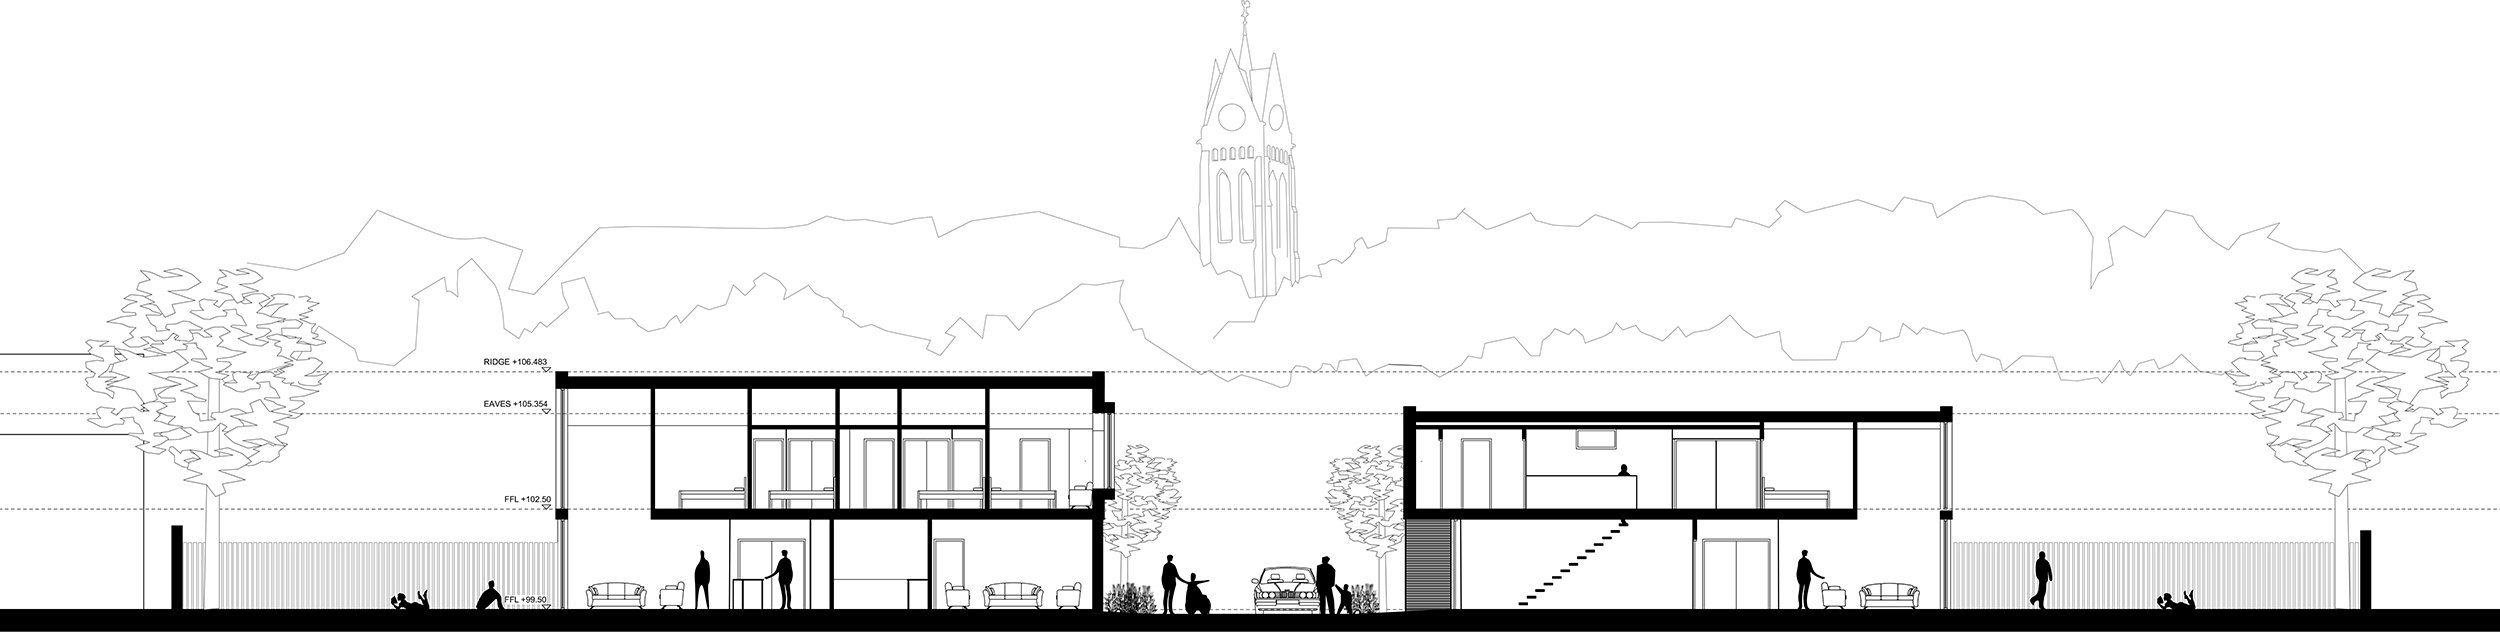 Section through new street with framed view of Church tower beyond